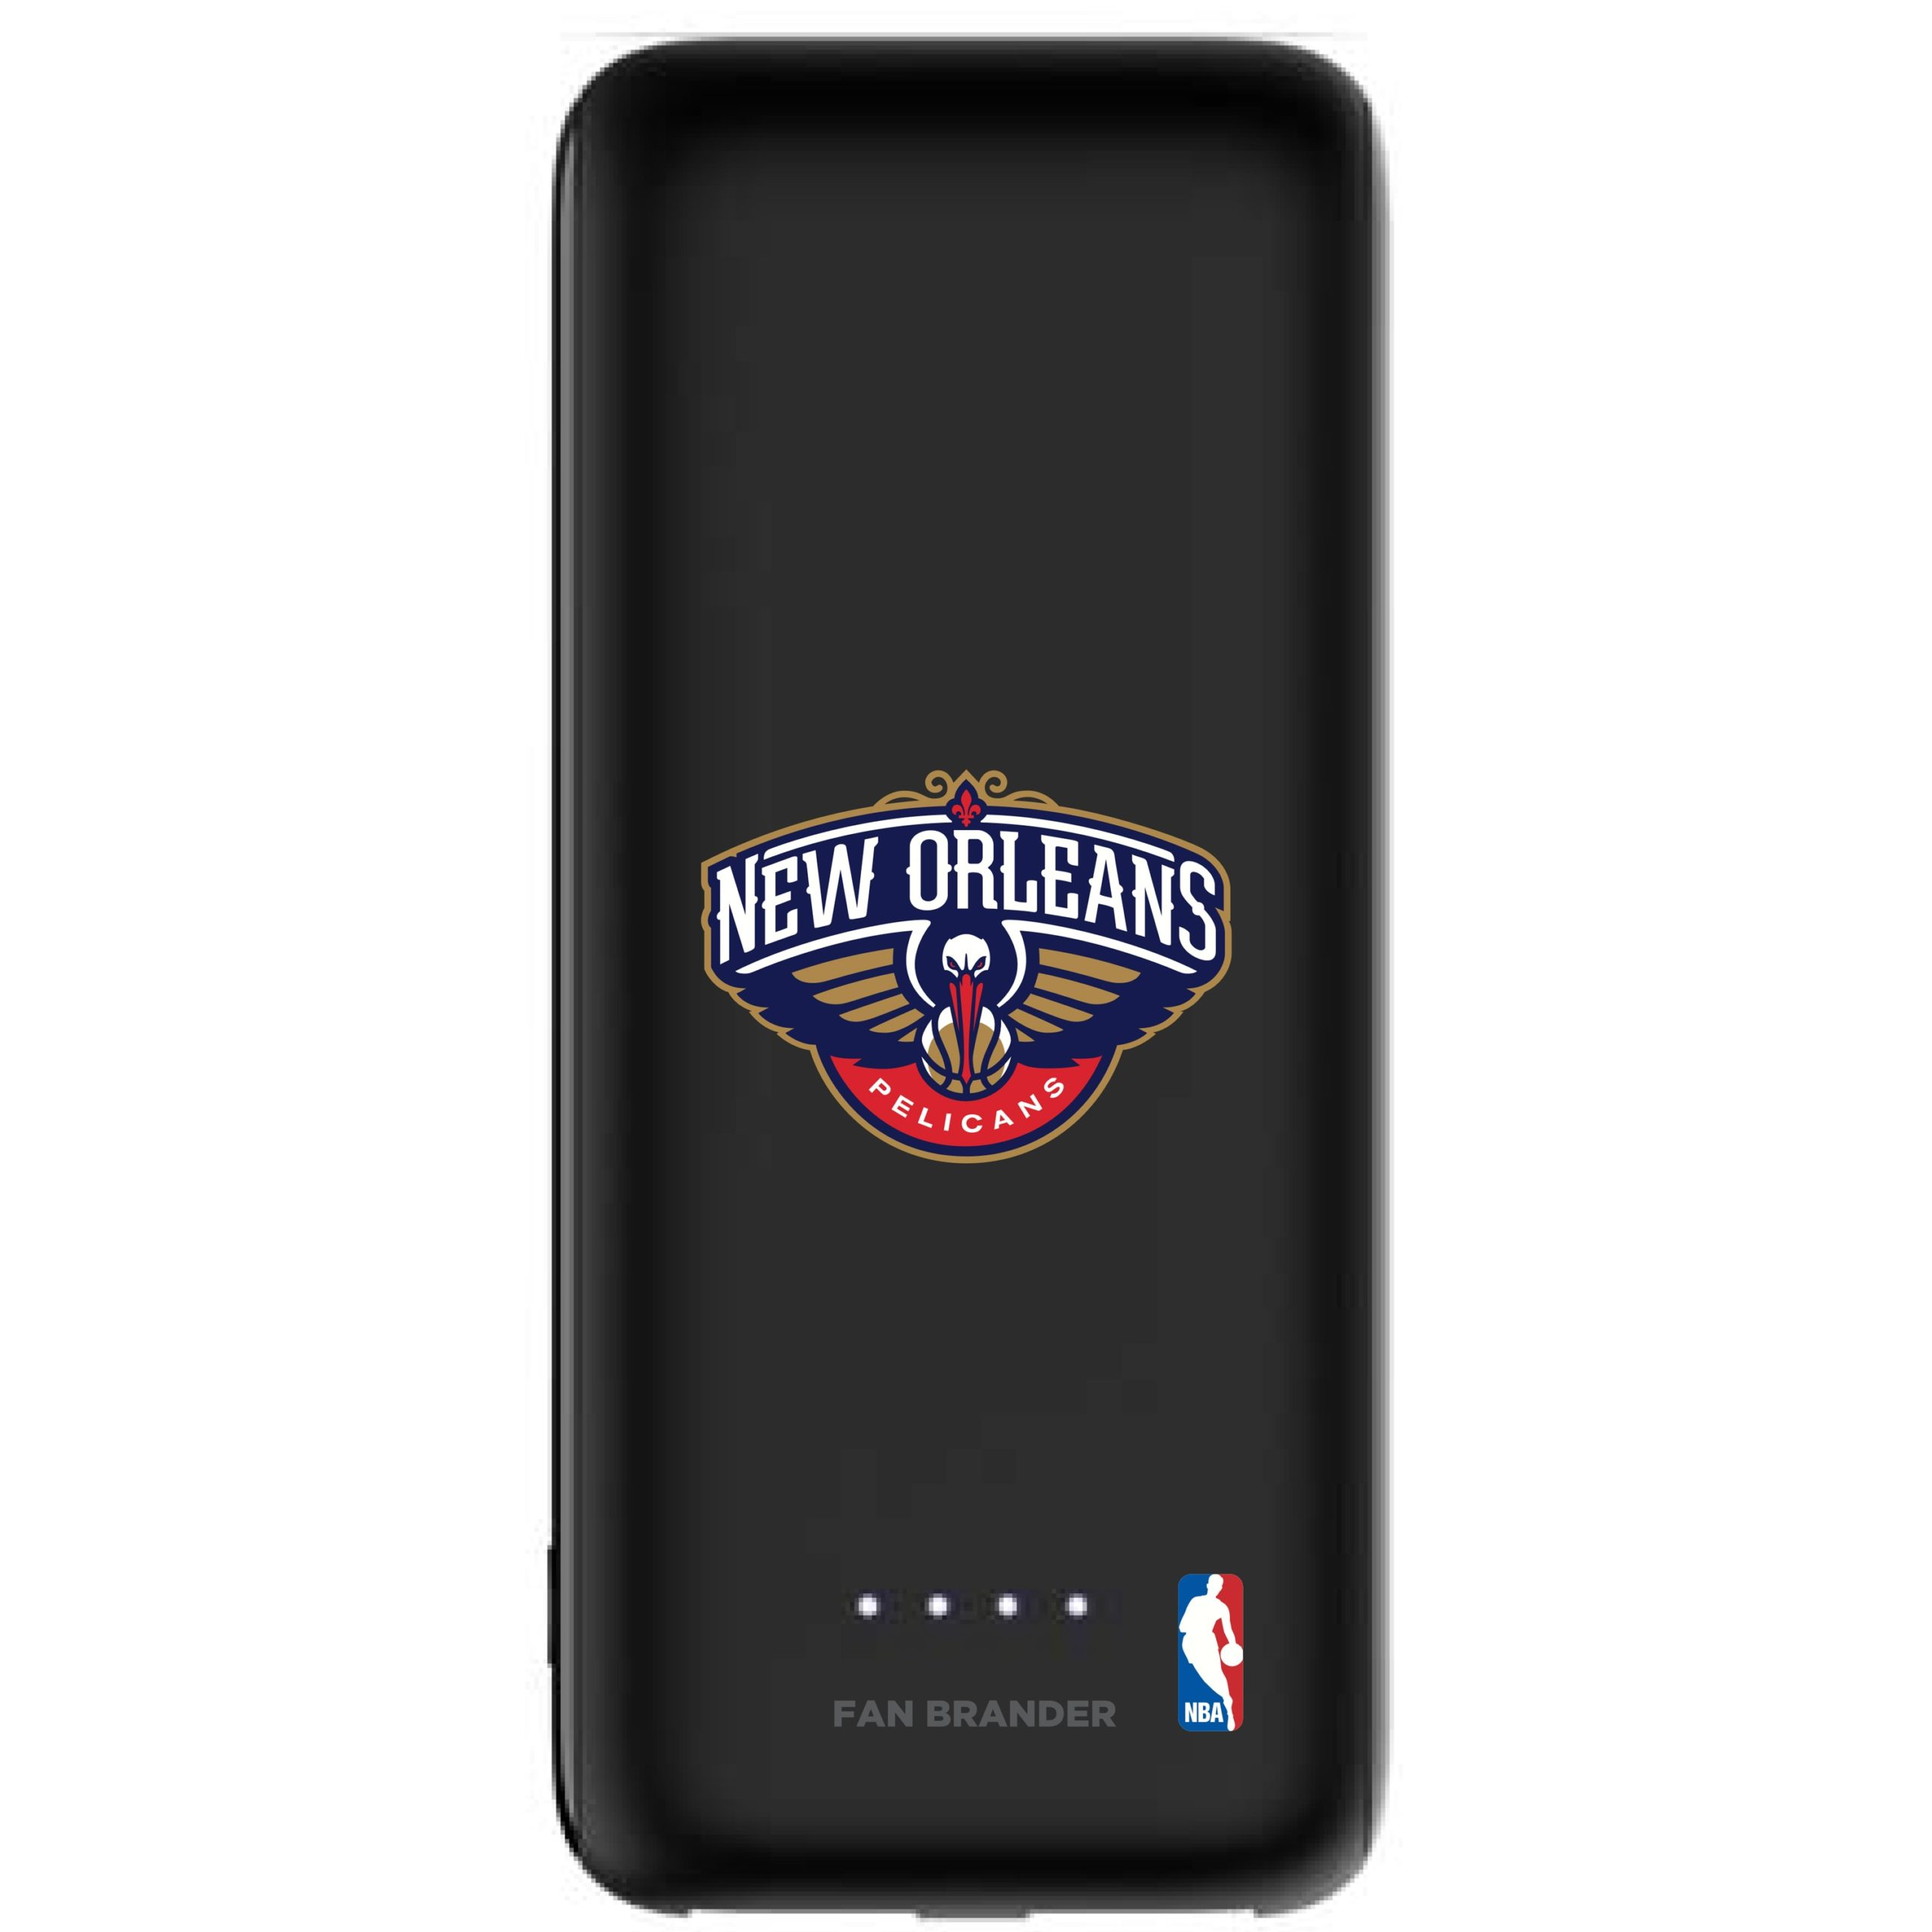 New Orleans Pelicans mophie 5200 mAh Universal Battery Power Boost